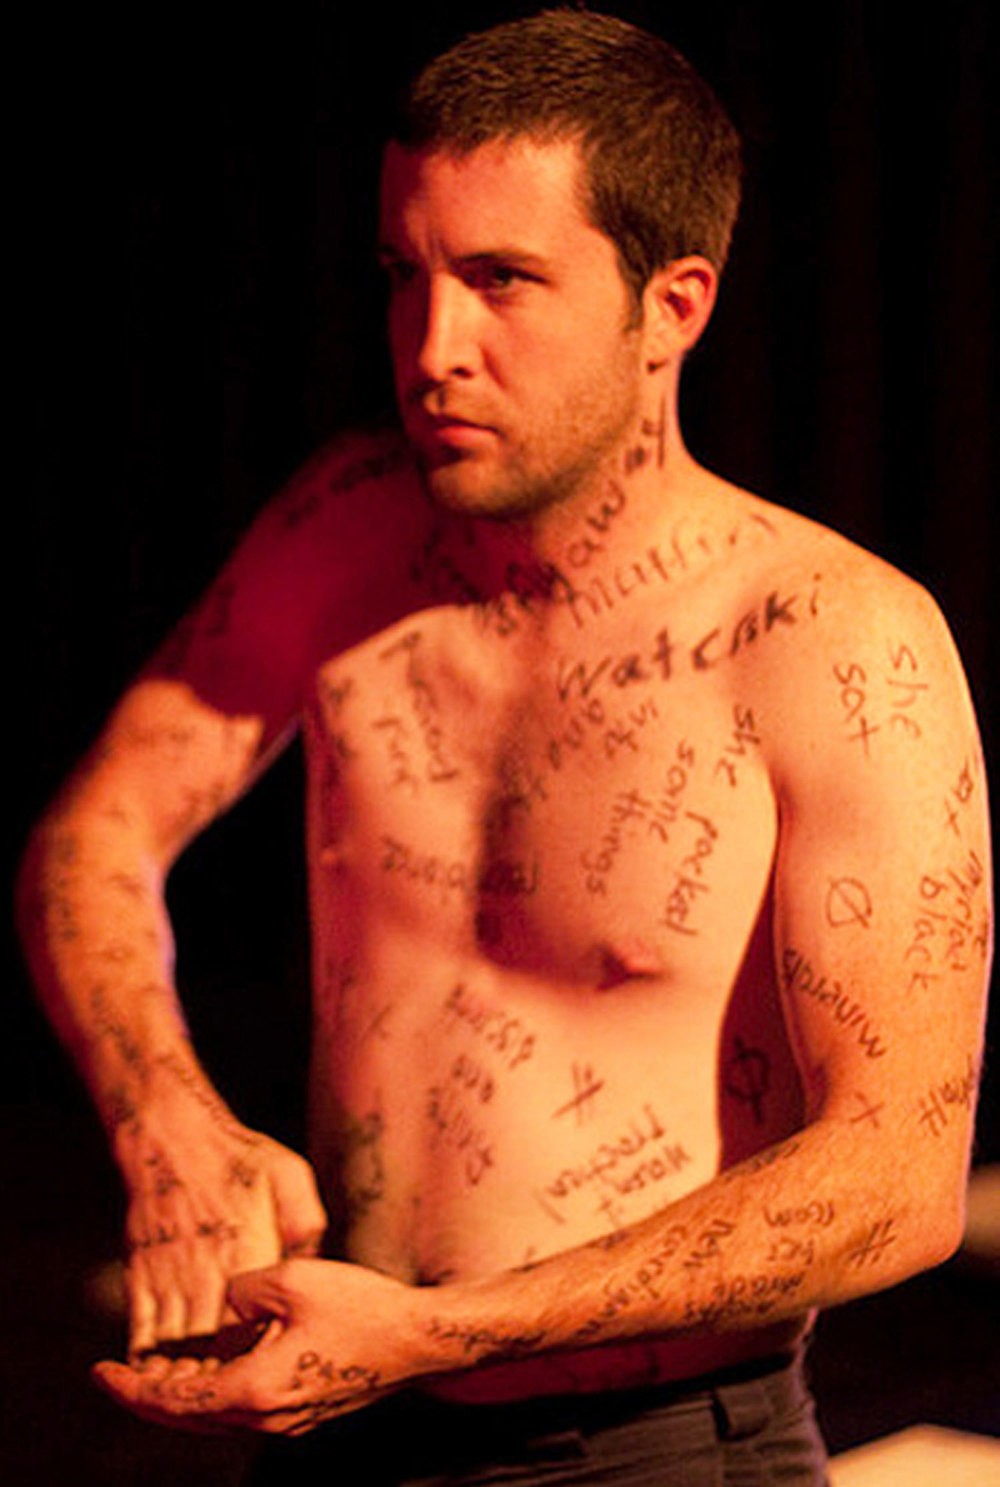 Shirtless man covered in writing, bends his fingers bakc